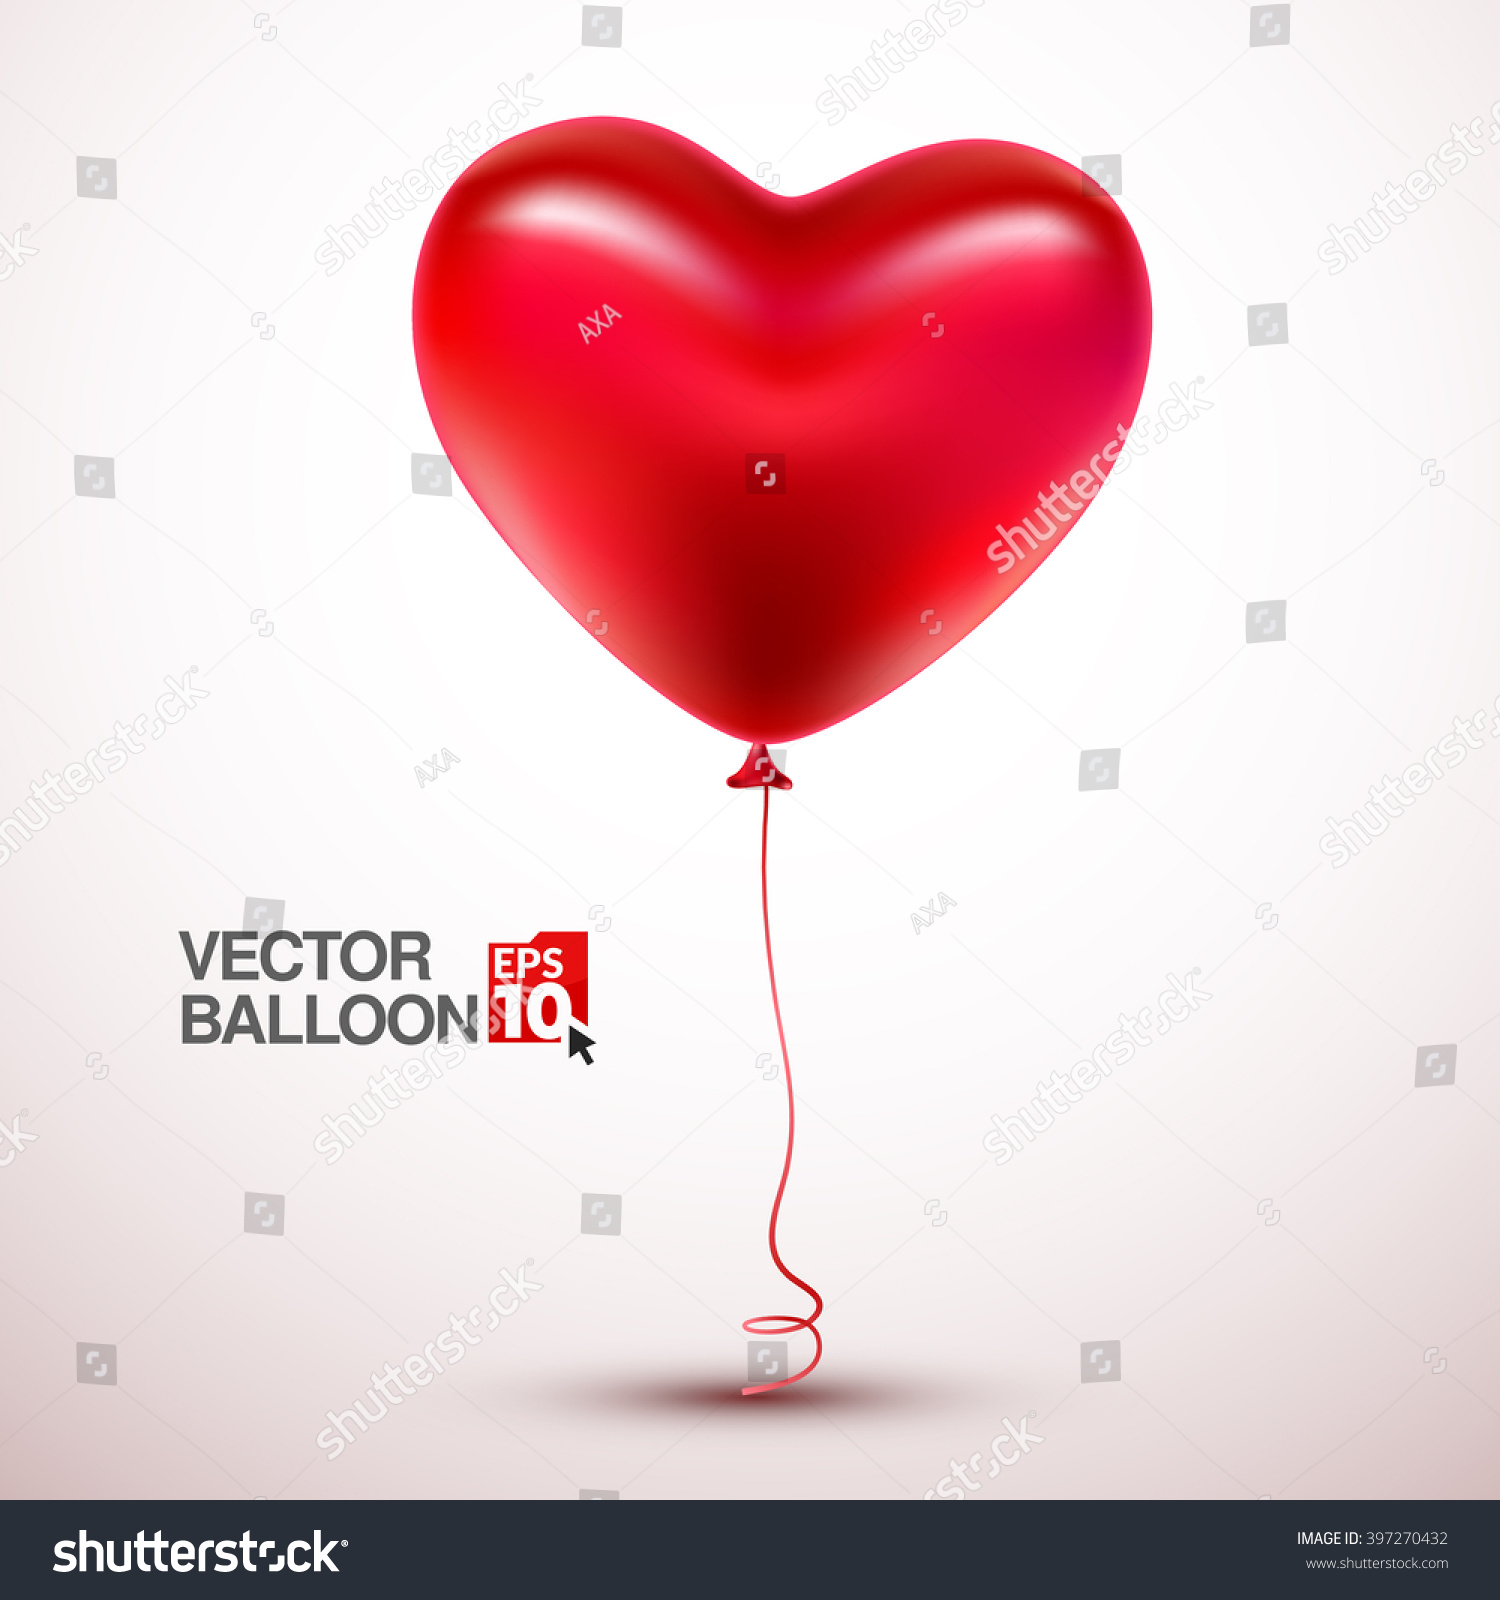 Heart Stock Images RoyaltyFree Images amp Vectors